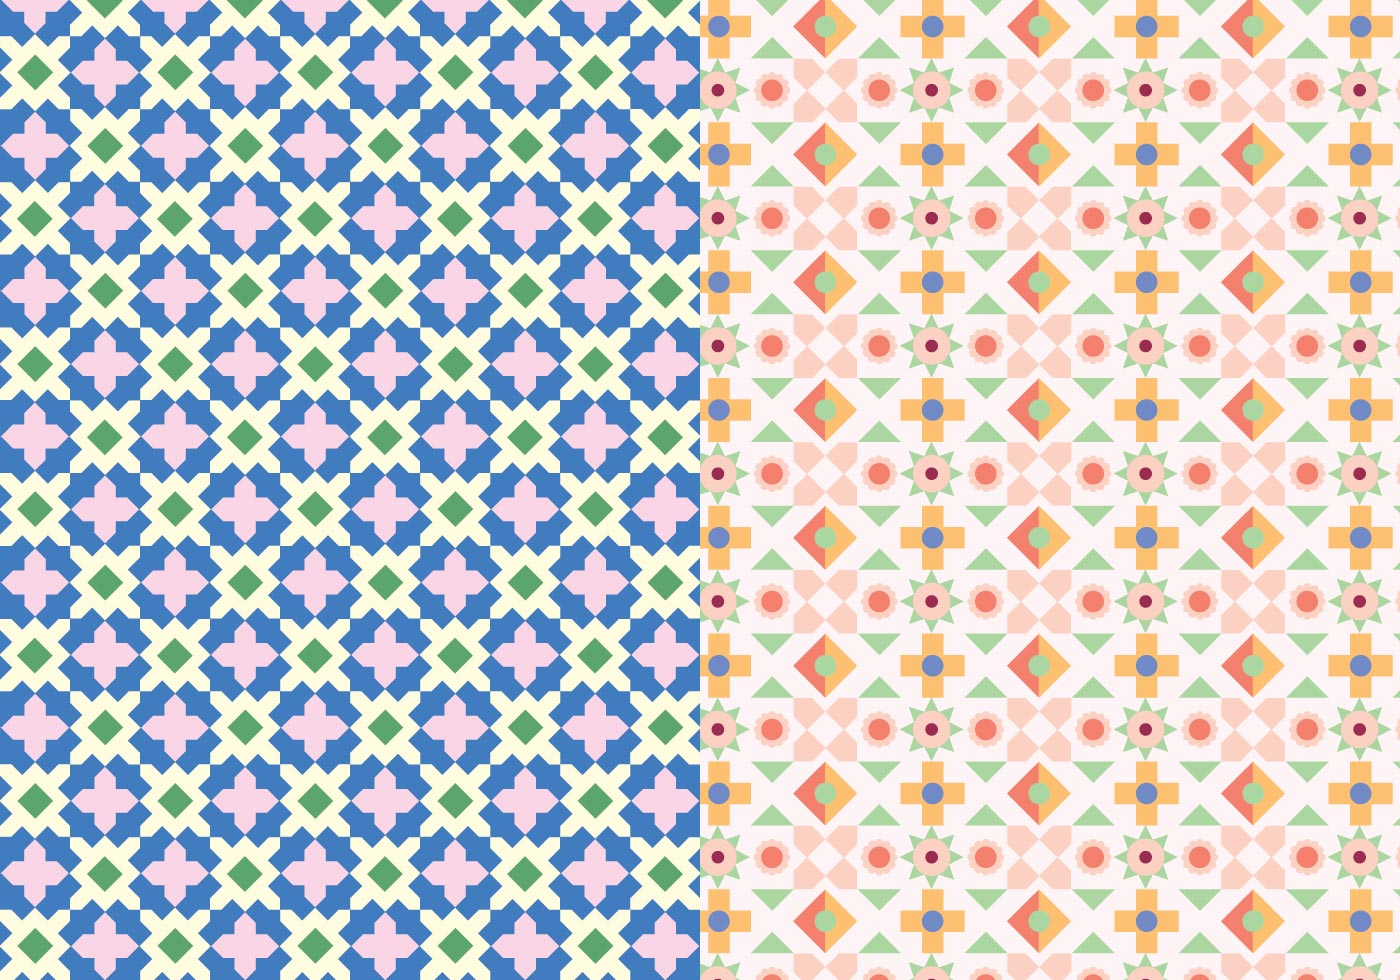 Decorative Mosaic Pattern Download Free Vectors Clipart